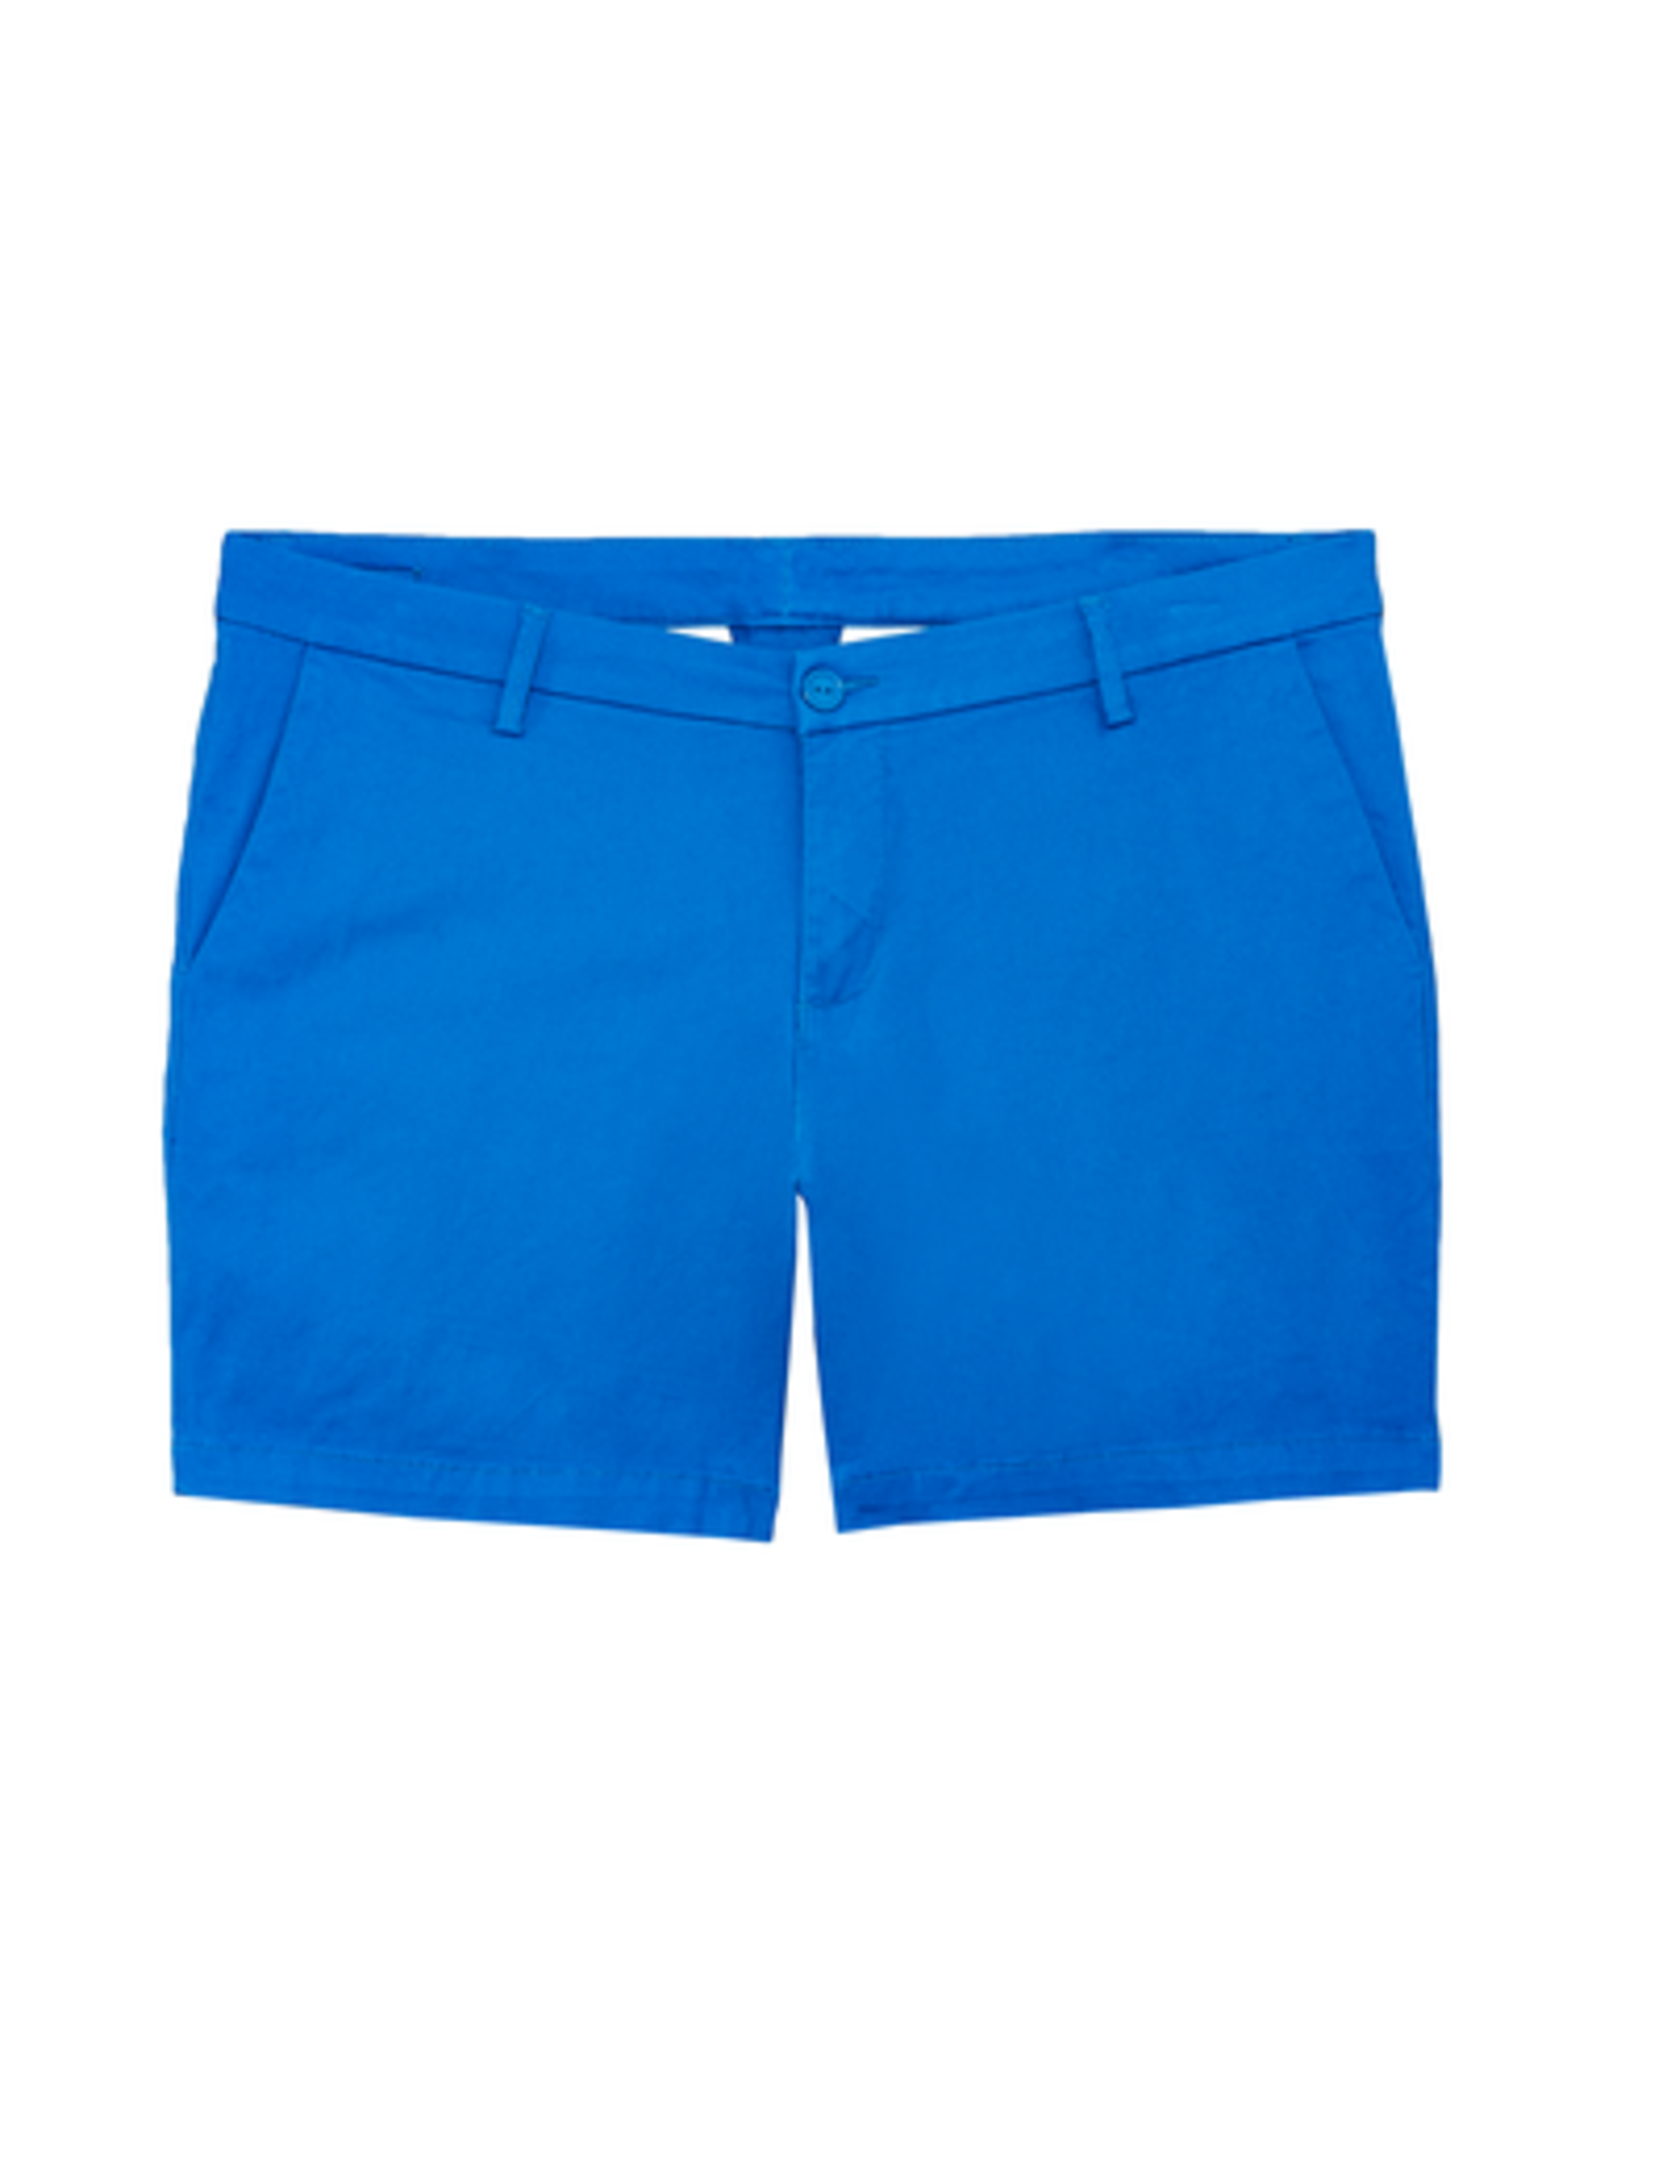 4th of july outfits plus size royal blue shorts